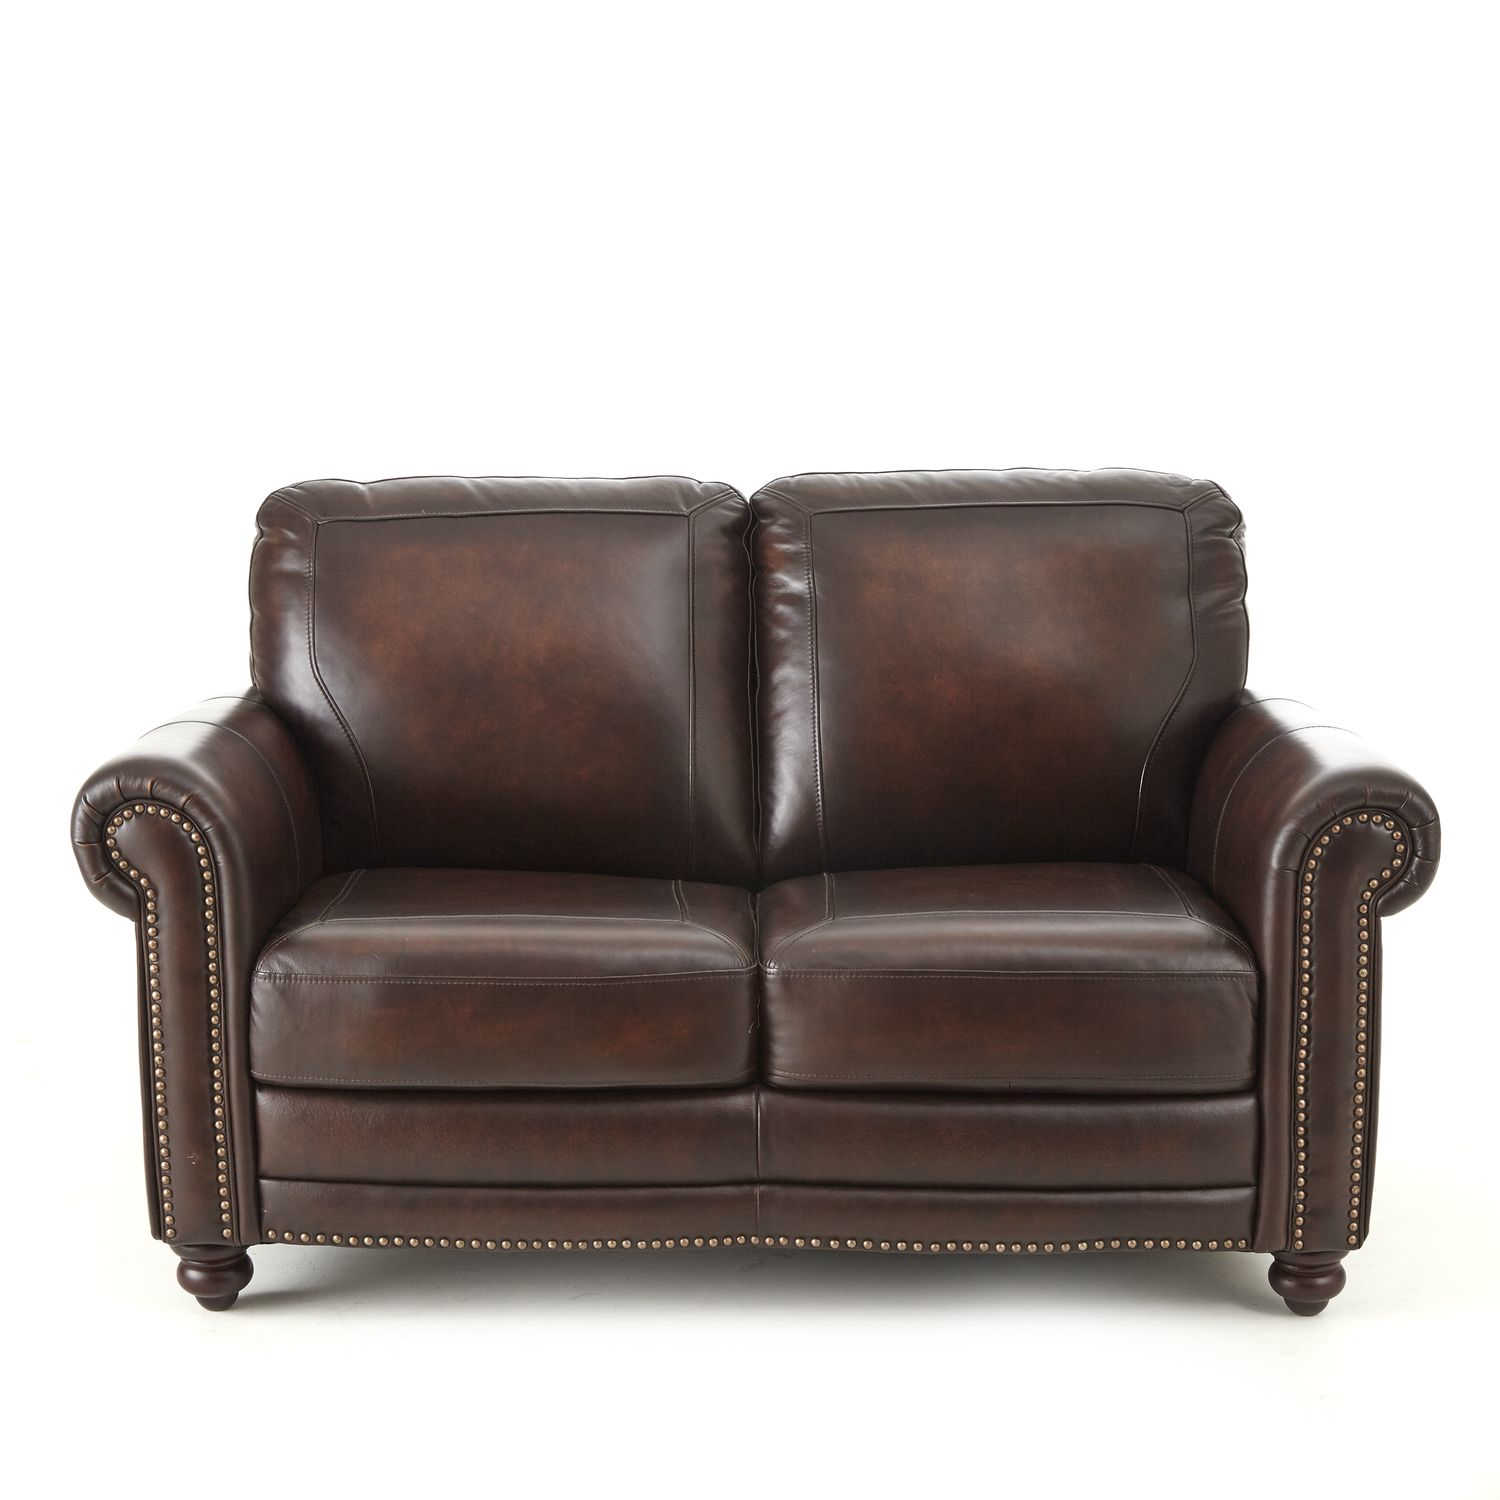 Steve Silver Ellington Brown Loveseat The Classy Home